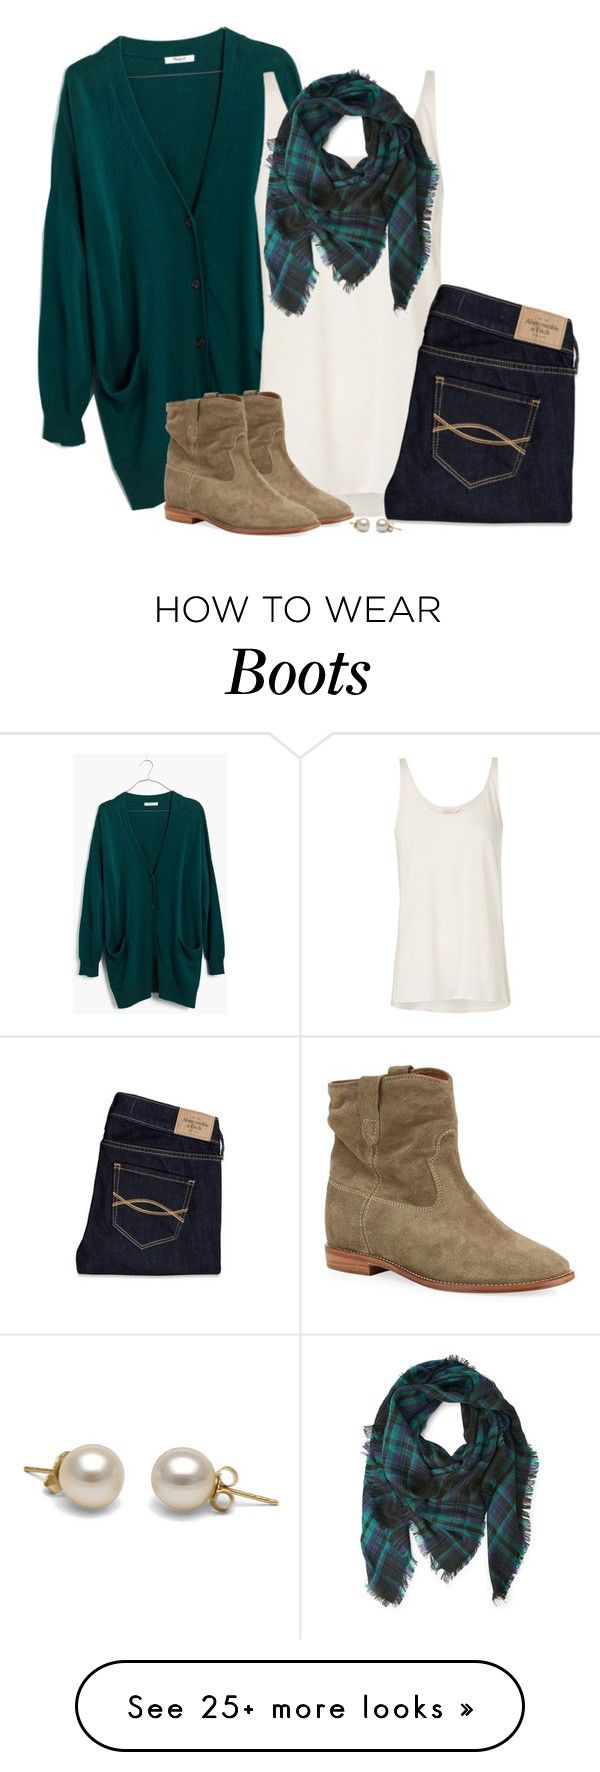 """Teal green cardigan, frayed plaid scarf & suede boots"" by steffiestaffie on Polyvore featuring Madewell, sass & bide, Abercrombie & Fitch, Forever 21 and Isabel Marant"